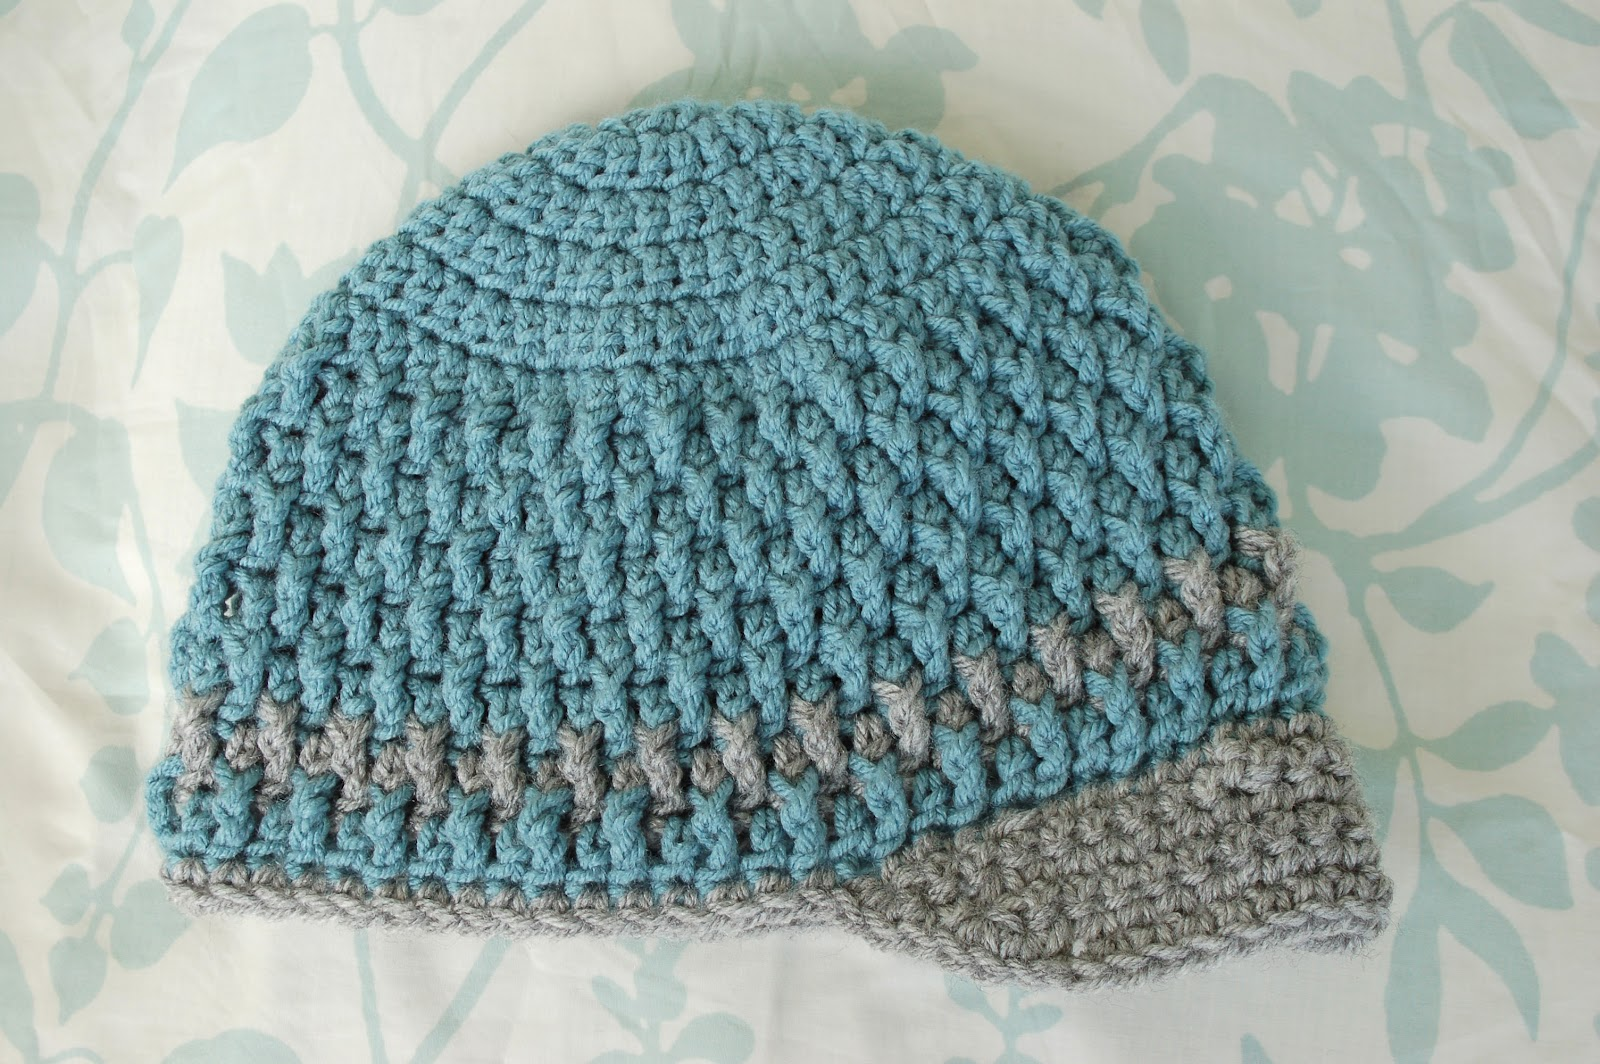 Free Crochet Patterns For Baby And Toddler Hats : Alli Crafts: Free Pattern: Deeply Textured Hat - Toddler